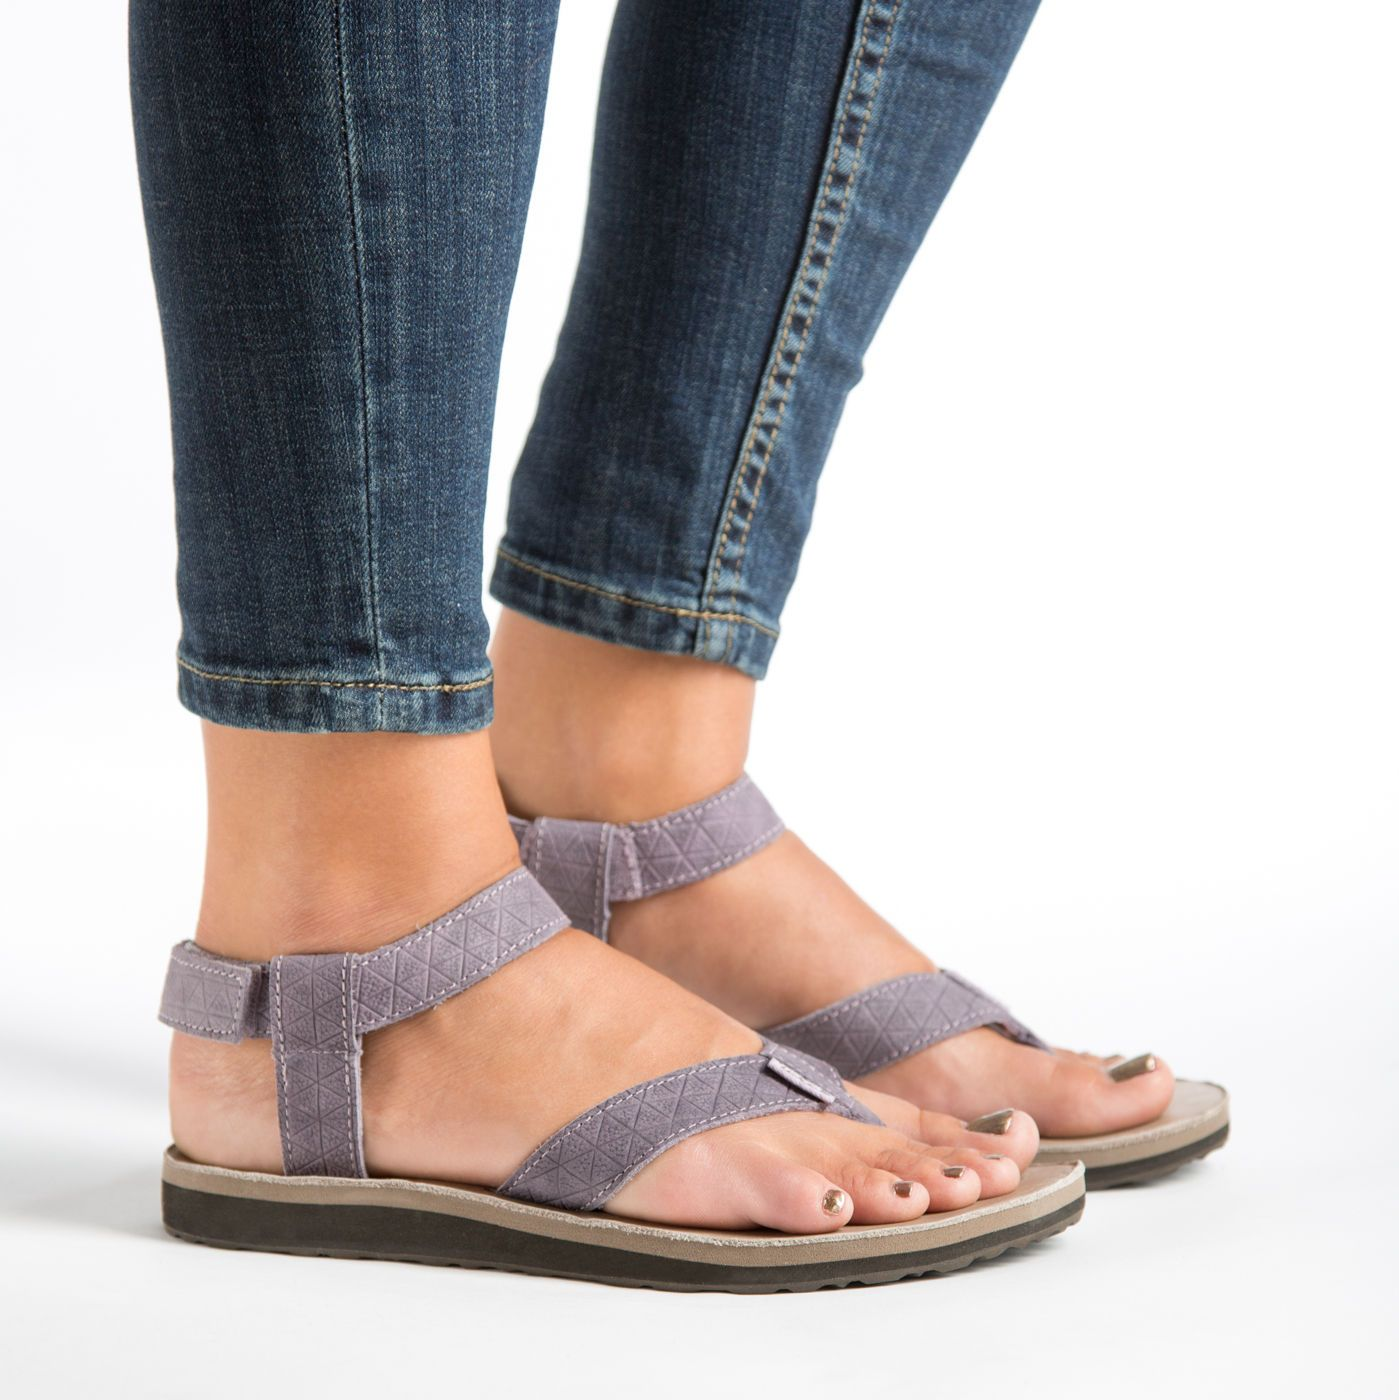 5f52288ce Free Shipping   Free Returns on Authentic Teva® Women s Sandals. Shop our  Collection of Sandals for Women including the Original Sandal Leather  Diamond at ...